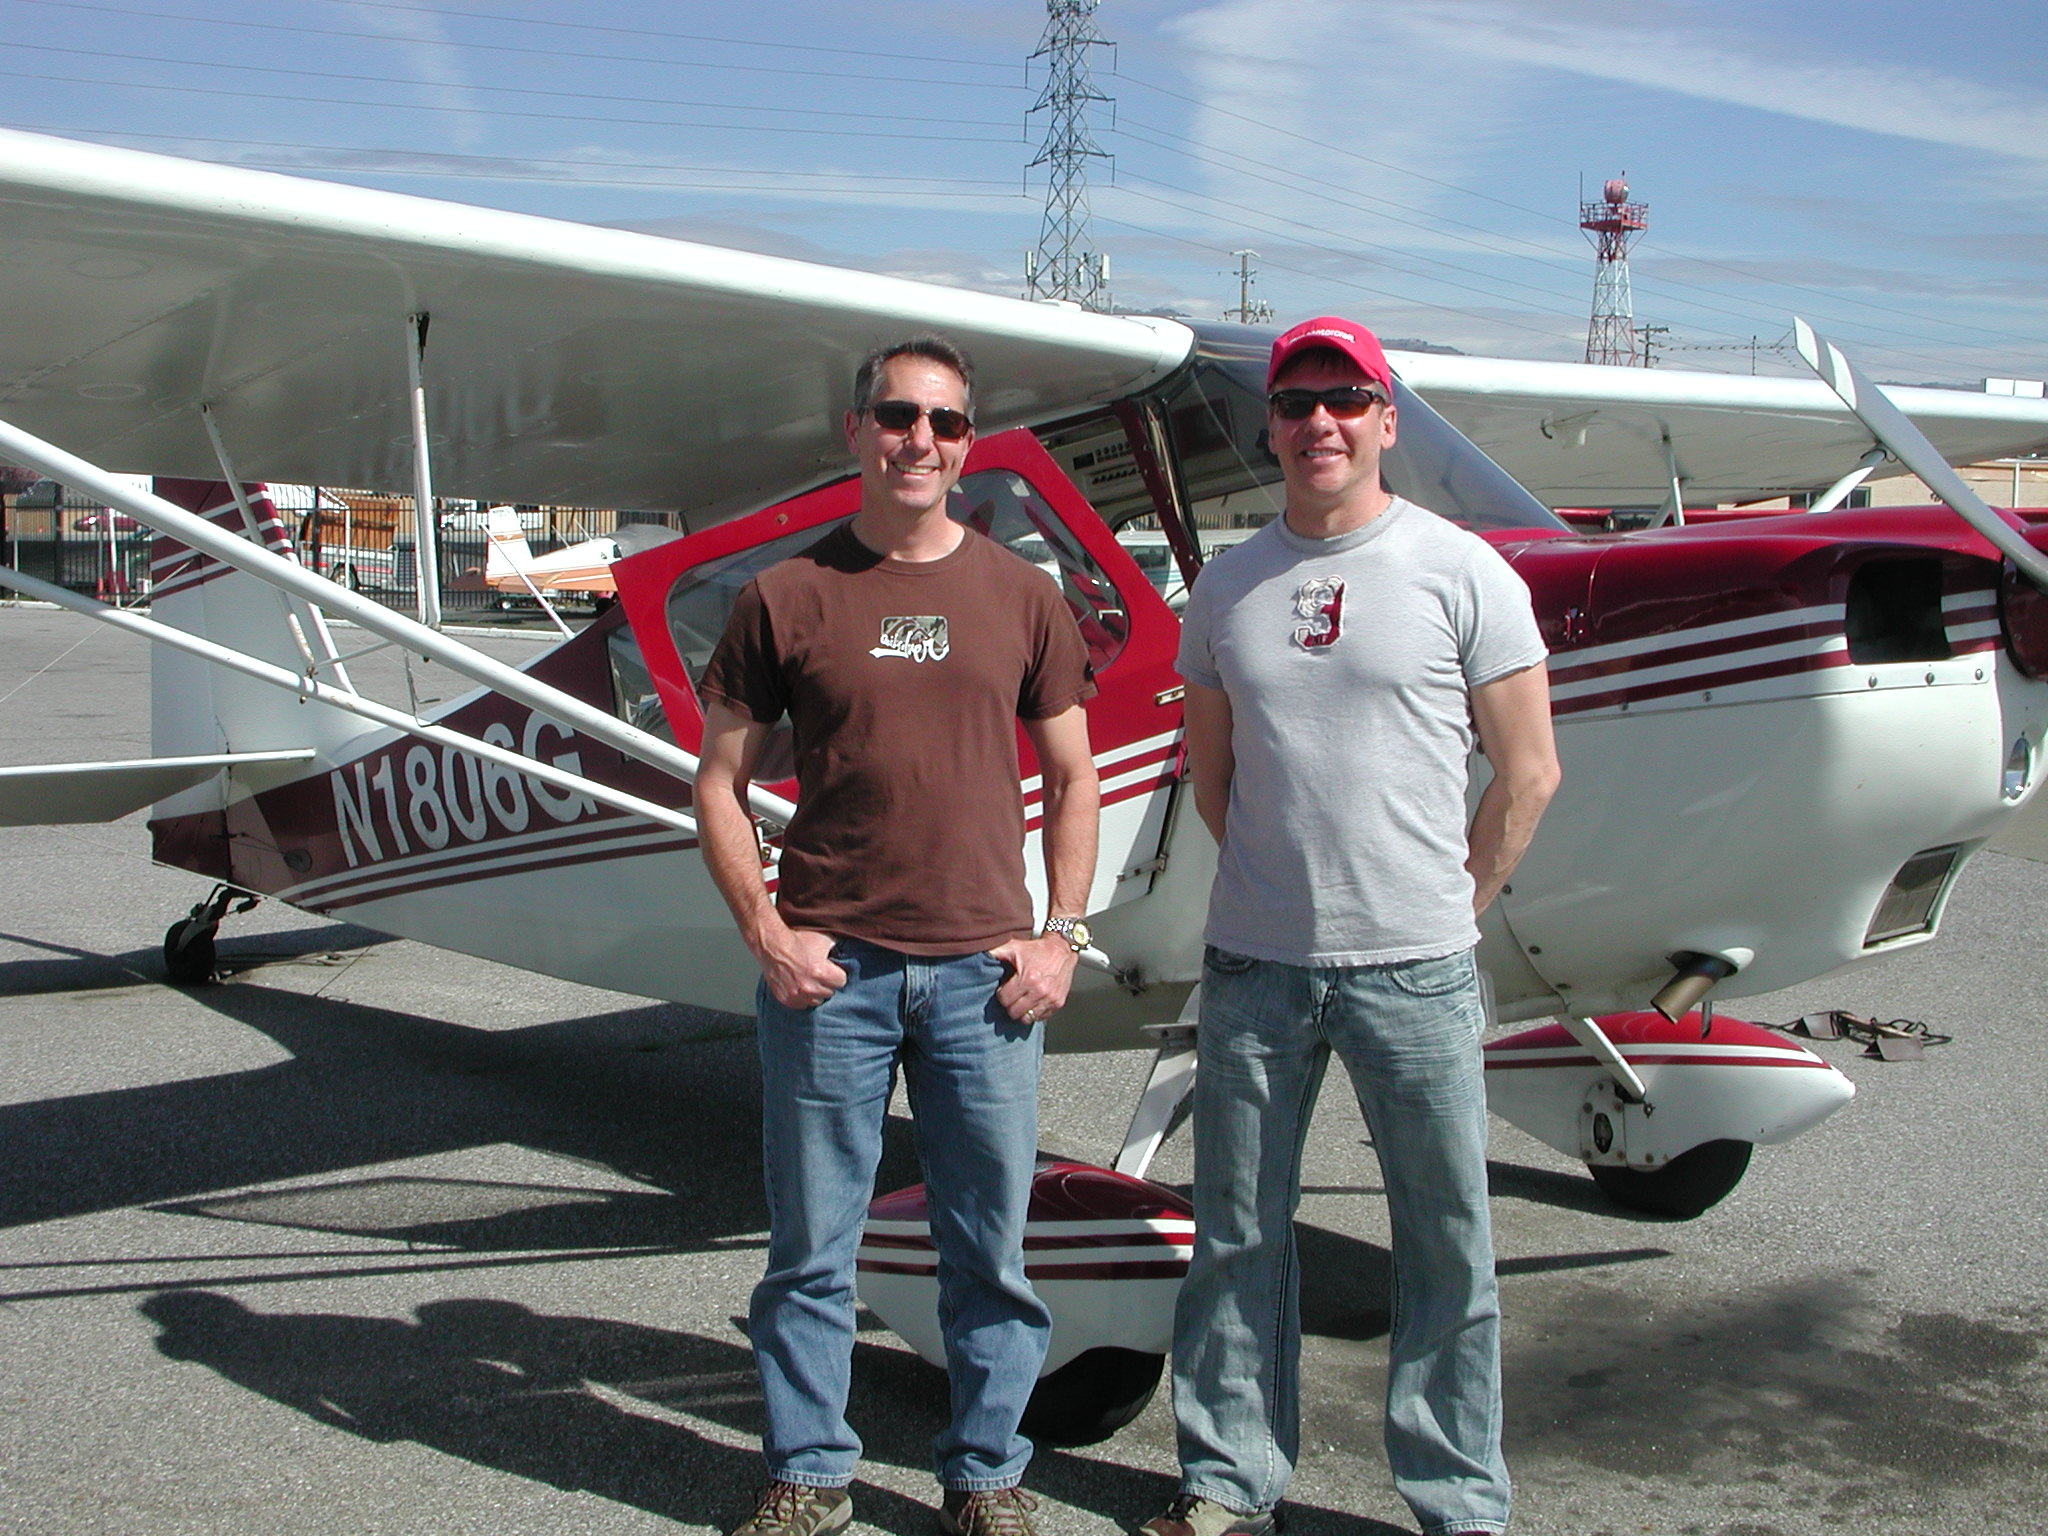 Tom Tymn flies tailwheel at AeroDynamic Aviation located at Reid Hillview Airport in San Jose, CA